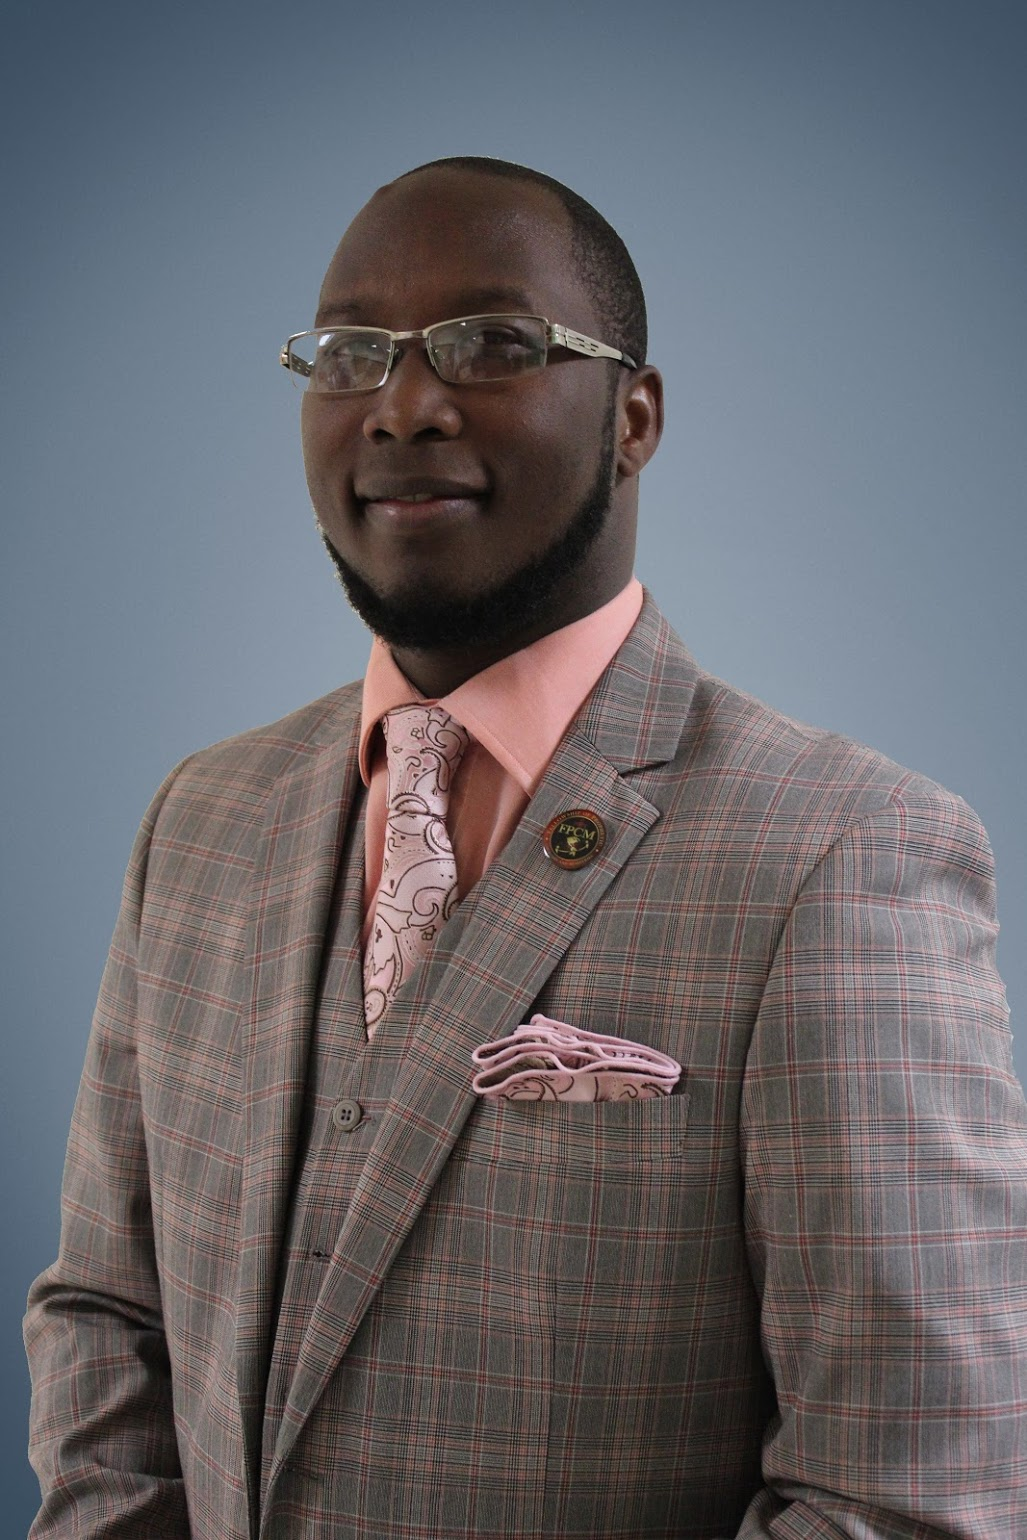 Minister Andre Marshall   Director of Worship & Arts Ministries    CONTACT